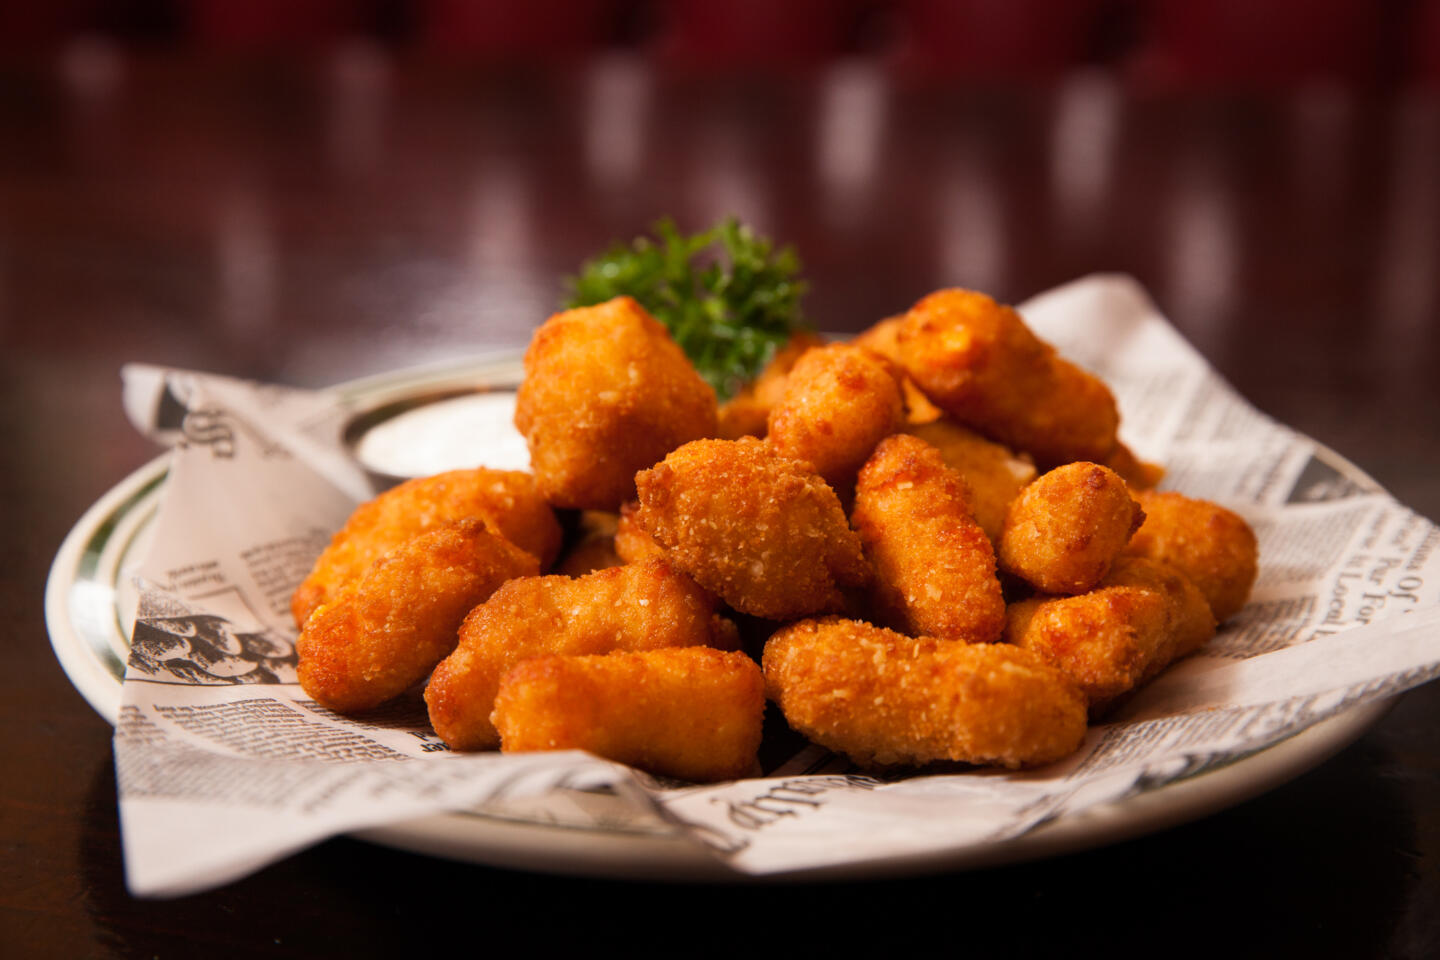 L Woods cheese curds